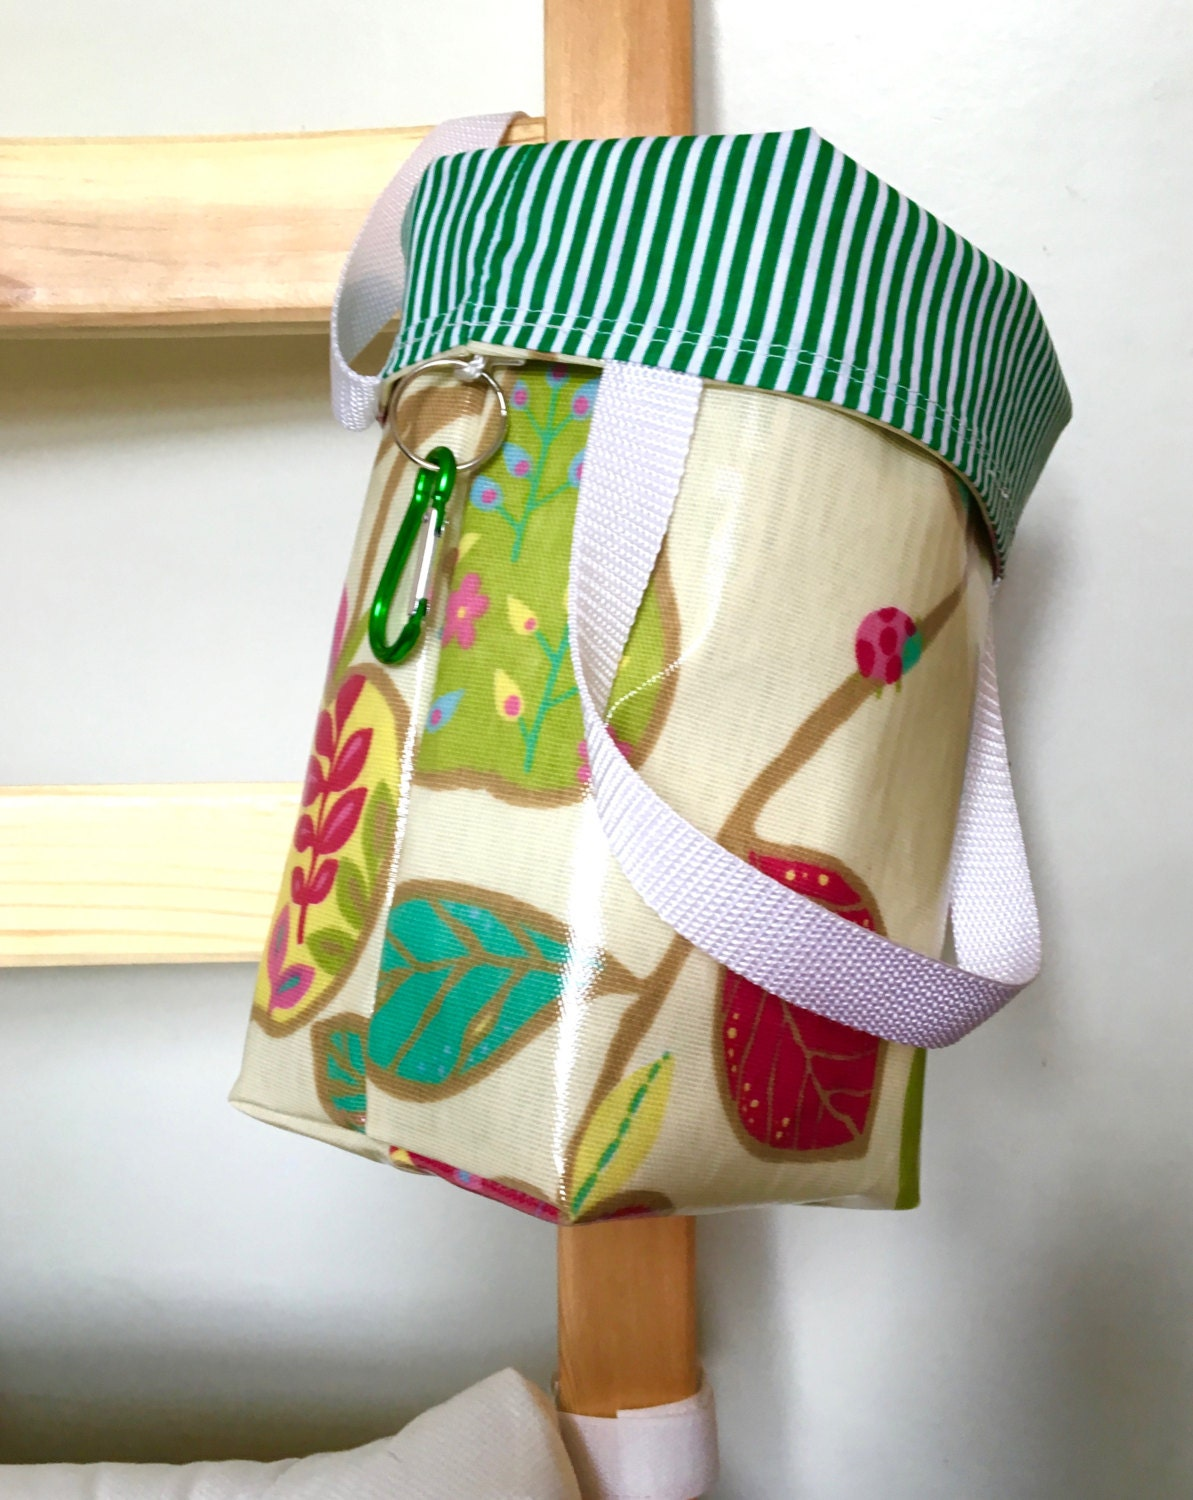 Knitting Project Bags Uk : Knitting bag project small notions case sock